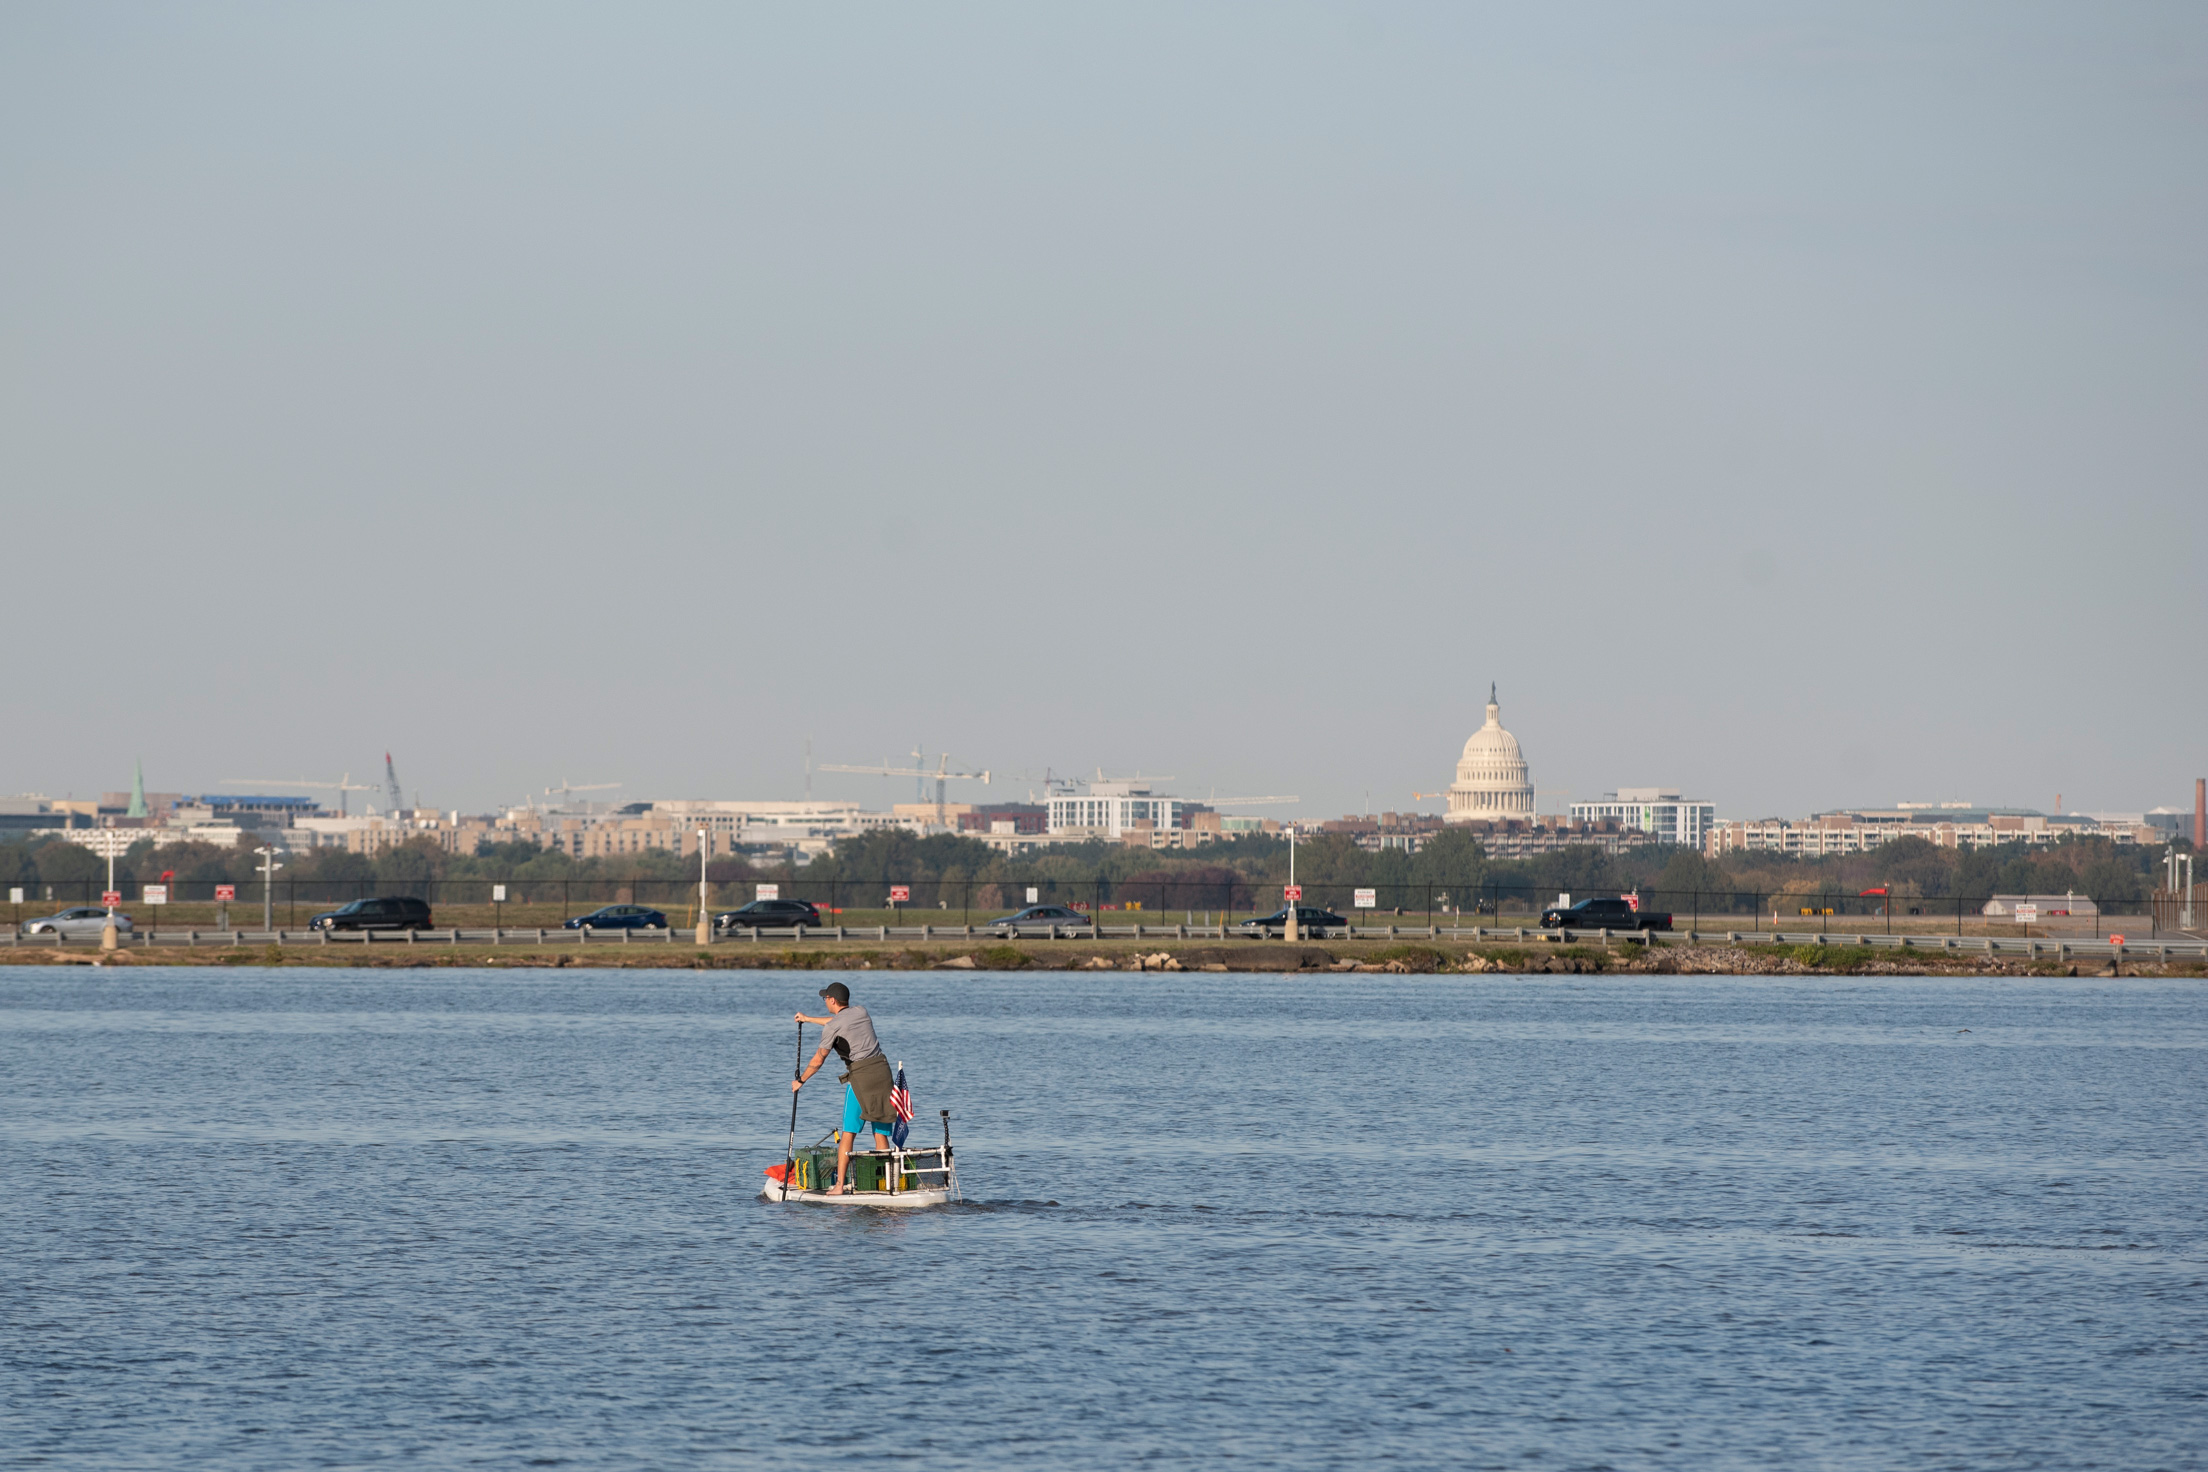 The United States Capitol Building is seen from a distance as Joseph Wright paddles down the Potomac River on November 5, 2019 in Alexandria, VA.